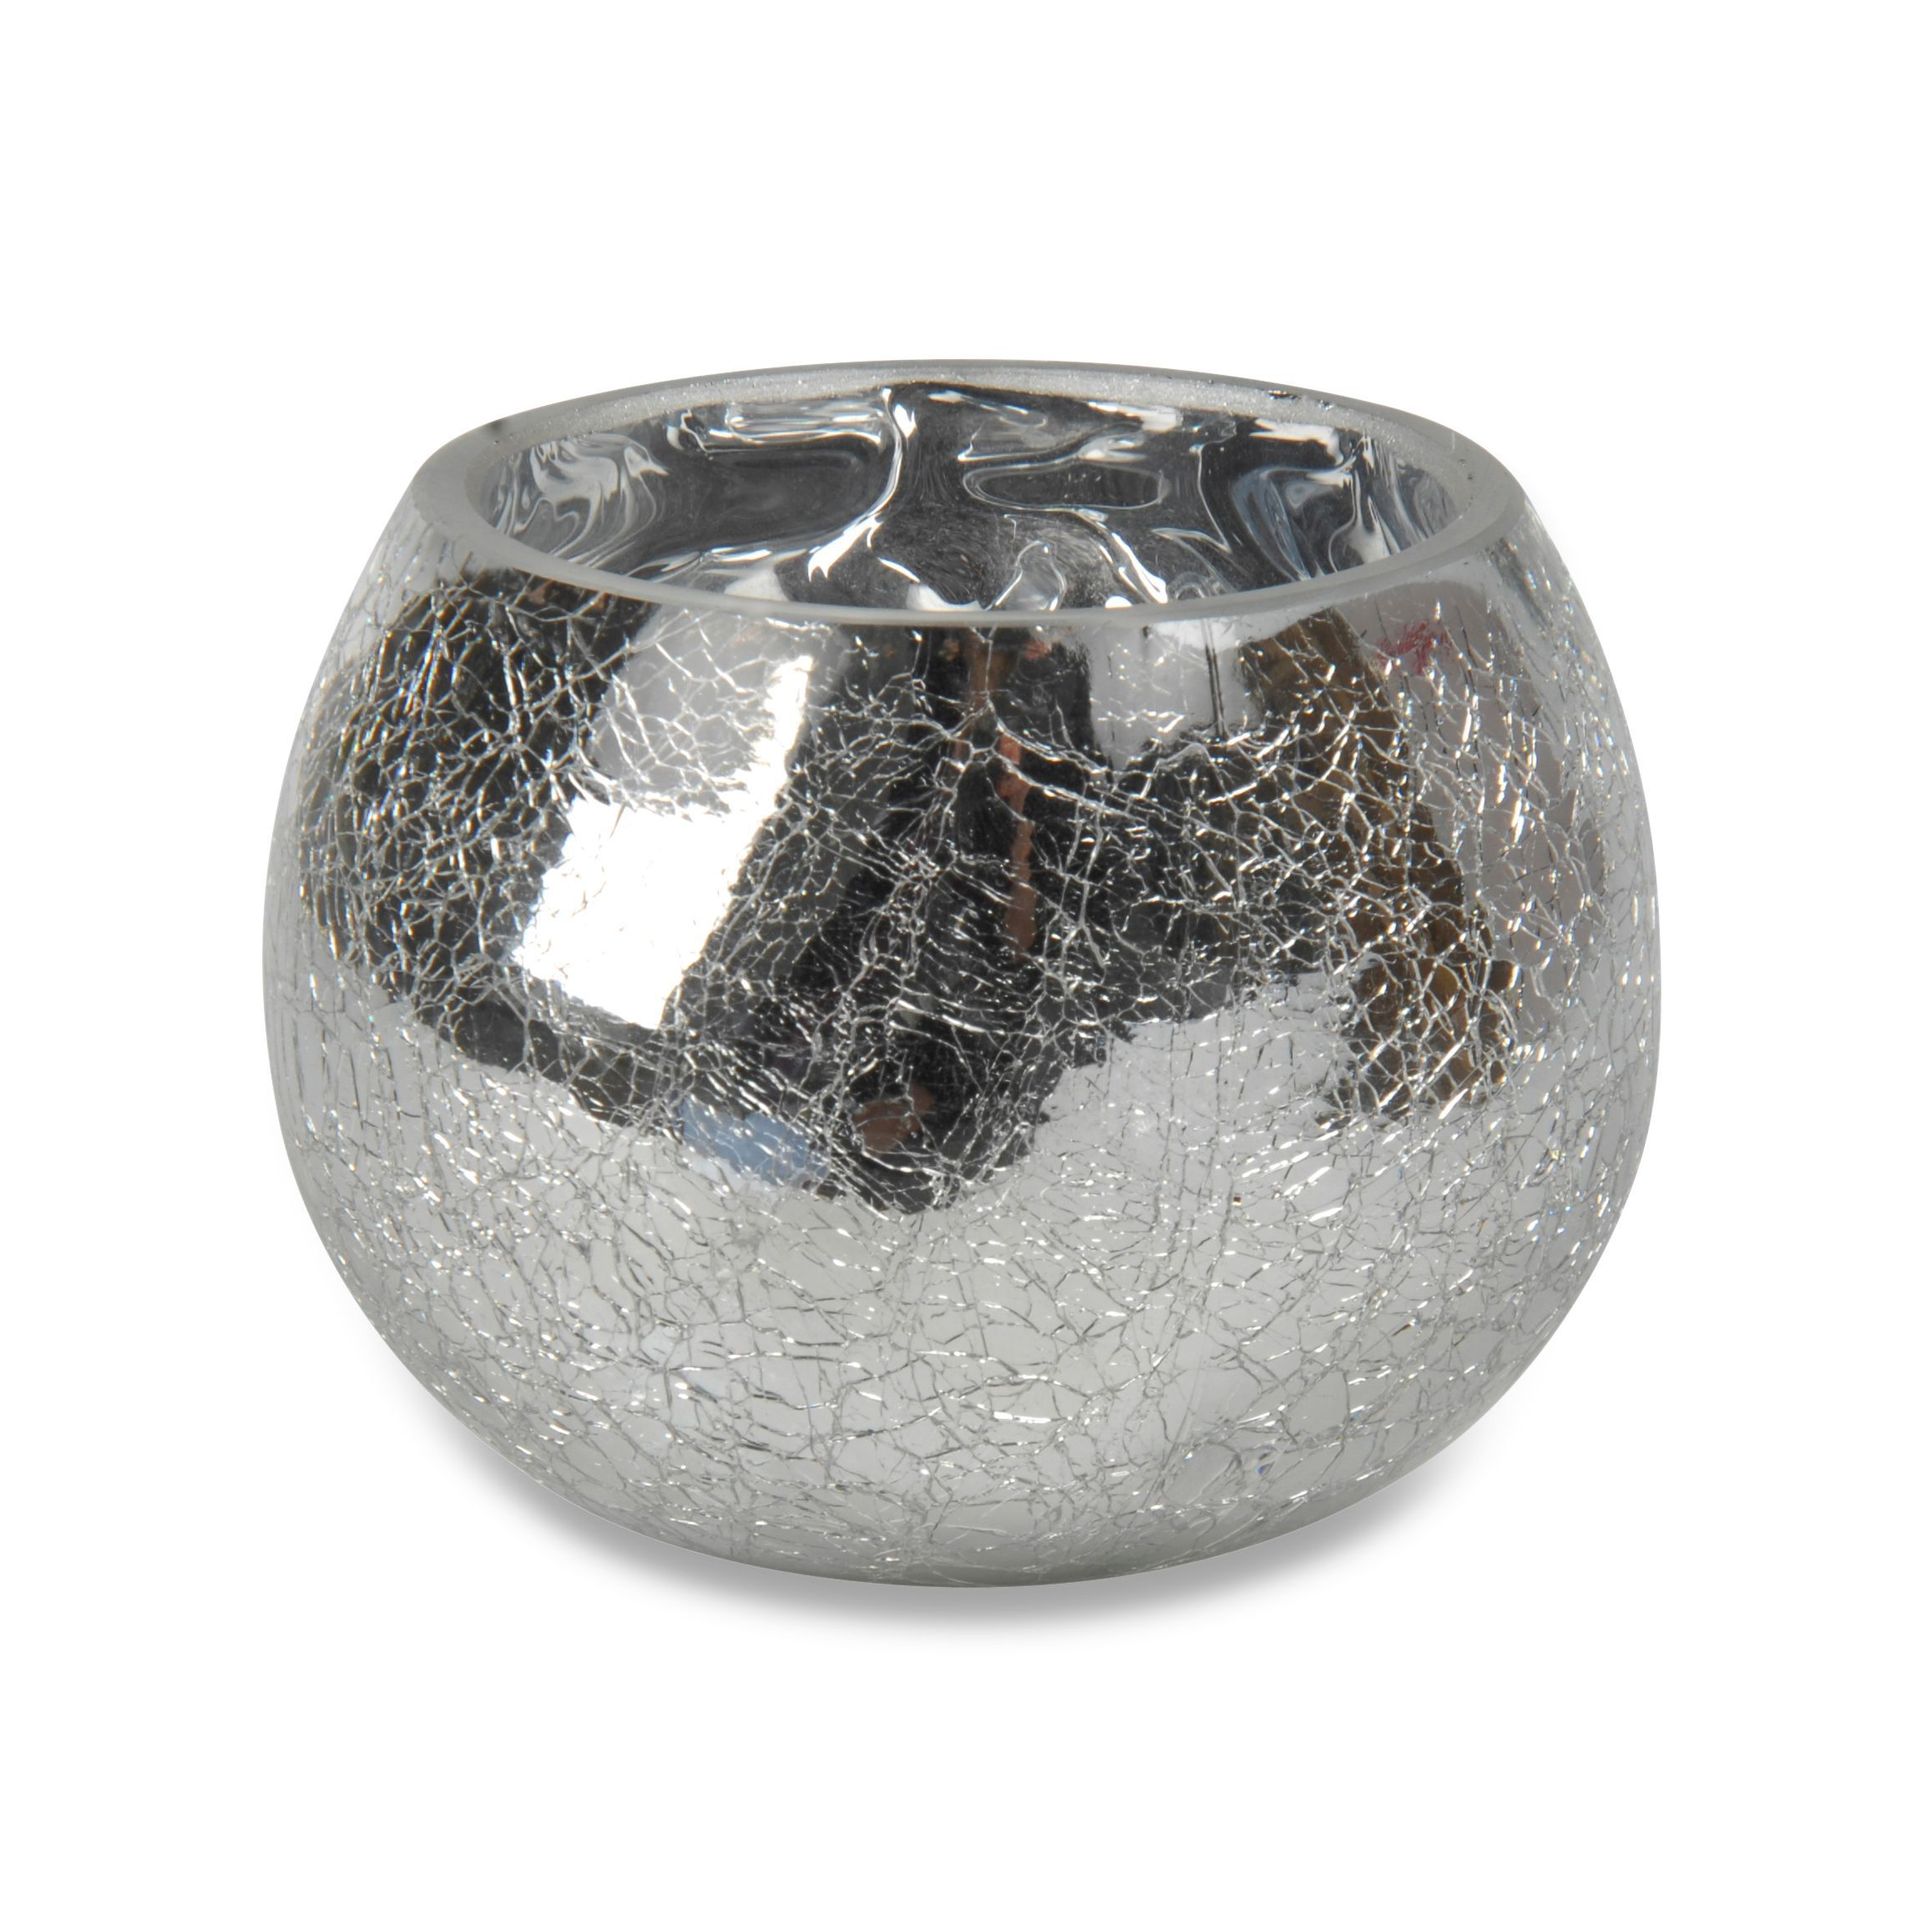 Silver Effect Crackle Glass Tealight Candle Holder, Large